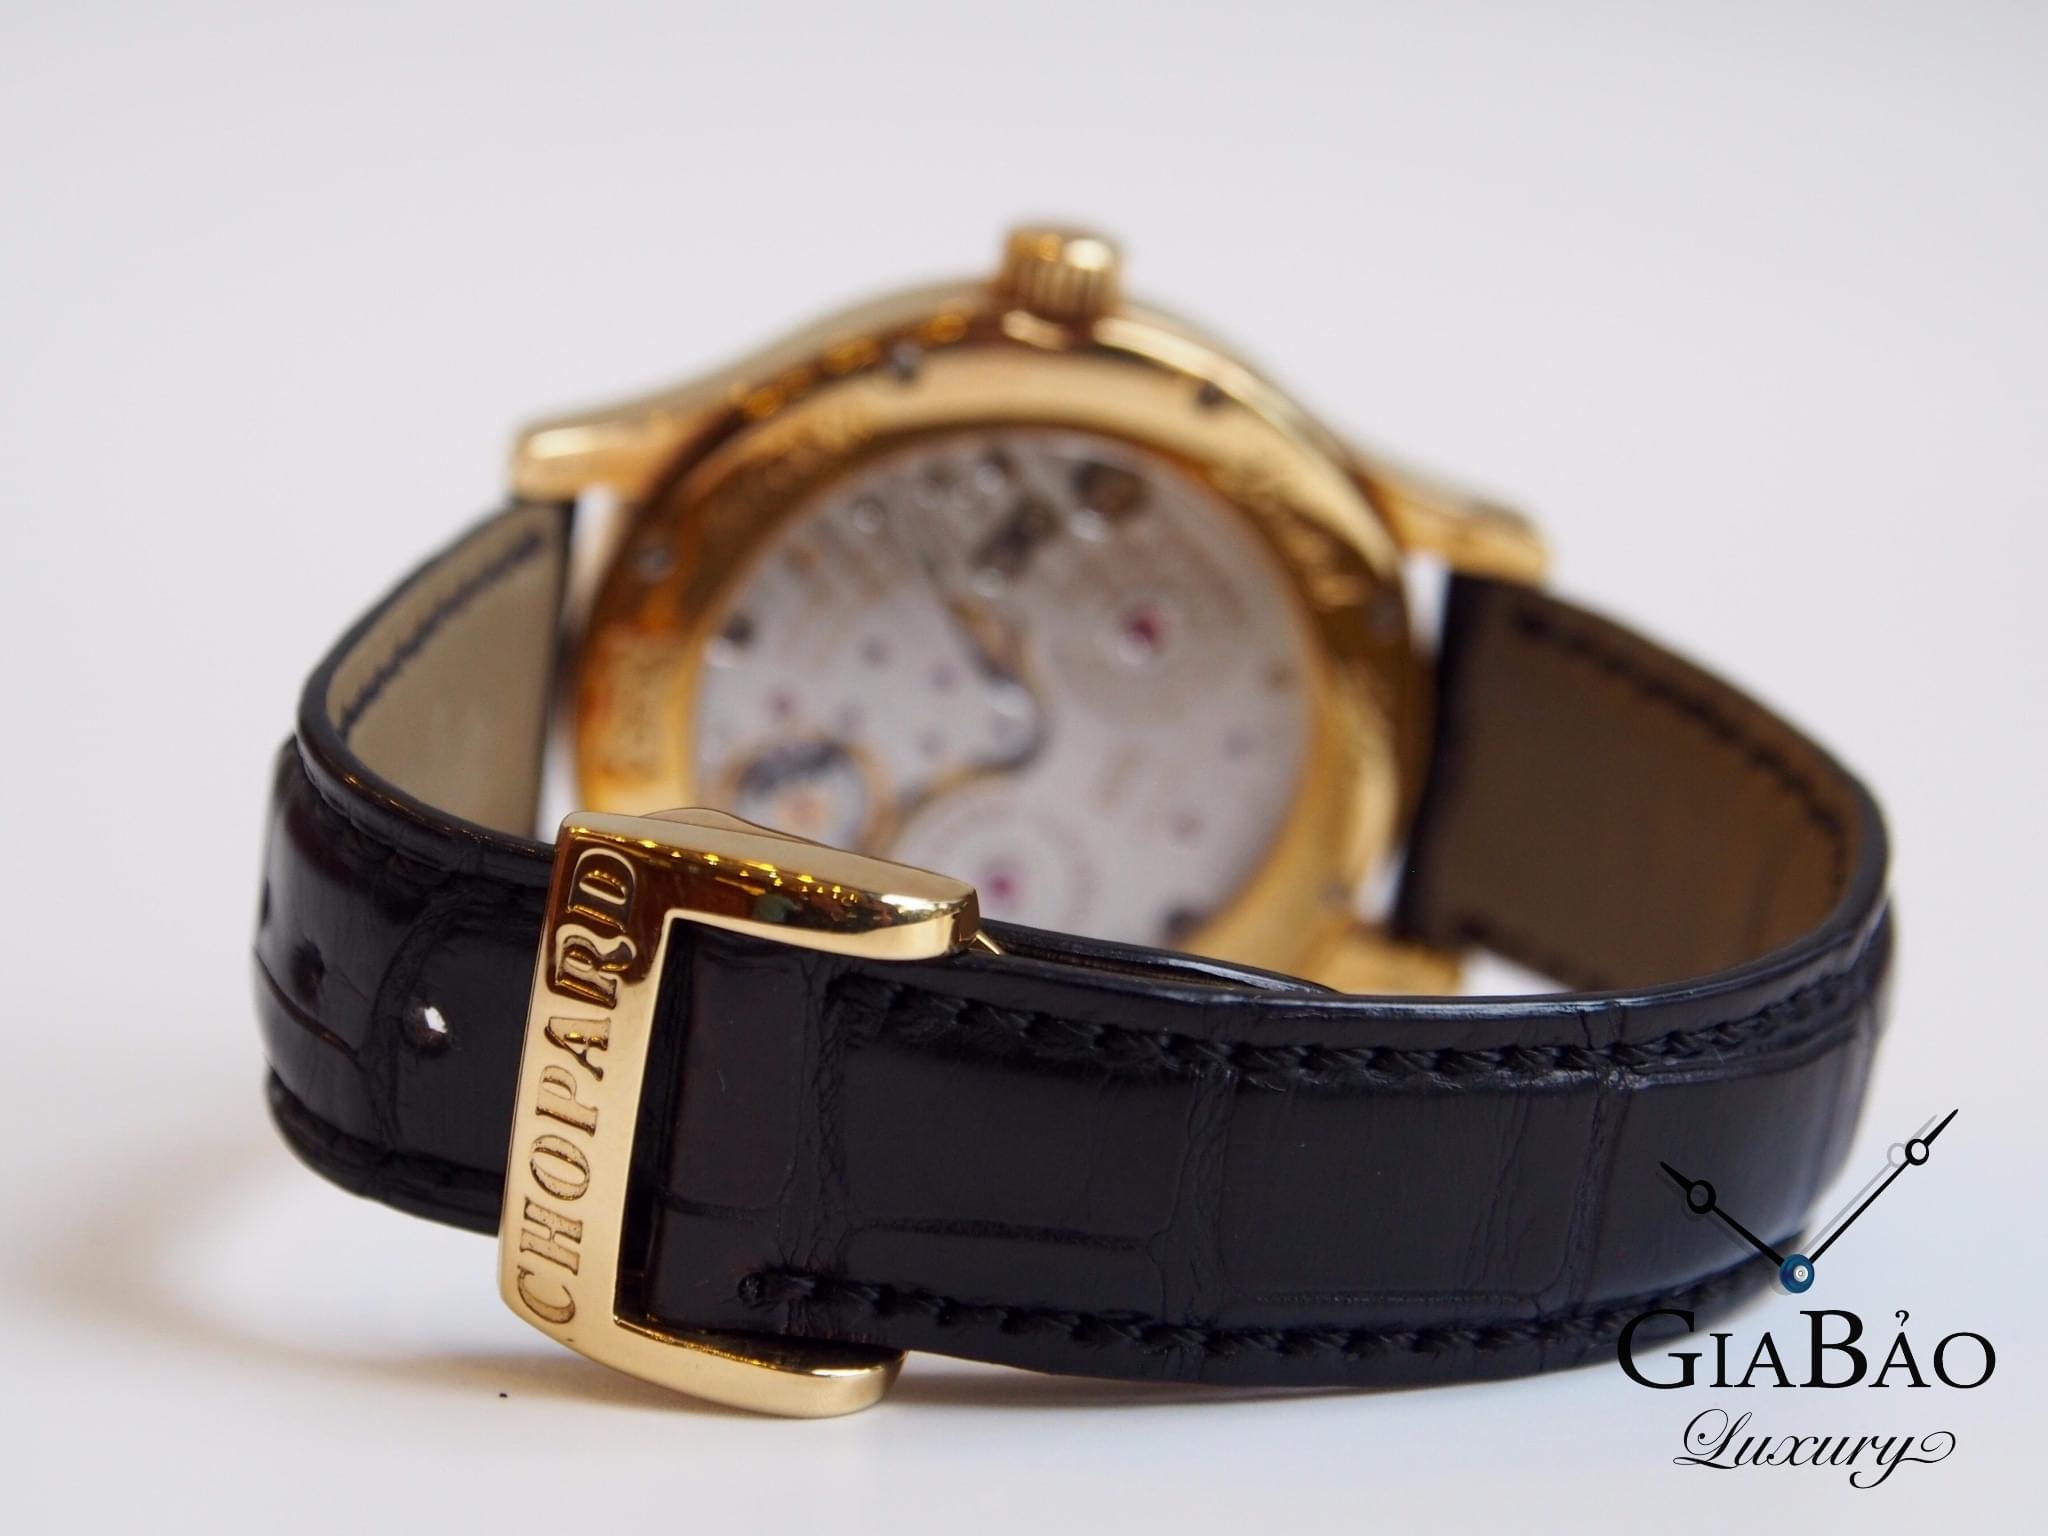 Đồng Hồ Chopard L.U.C Regulator Sliver And Black Dial Black Leather